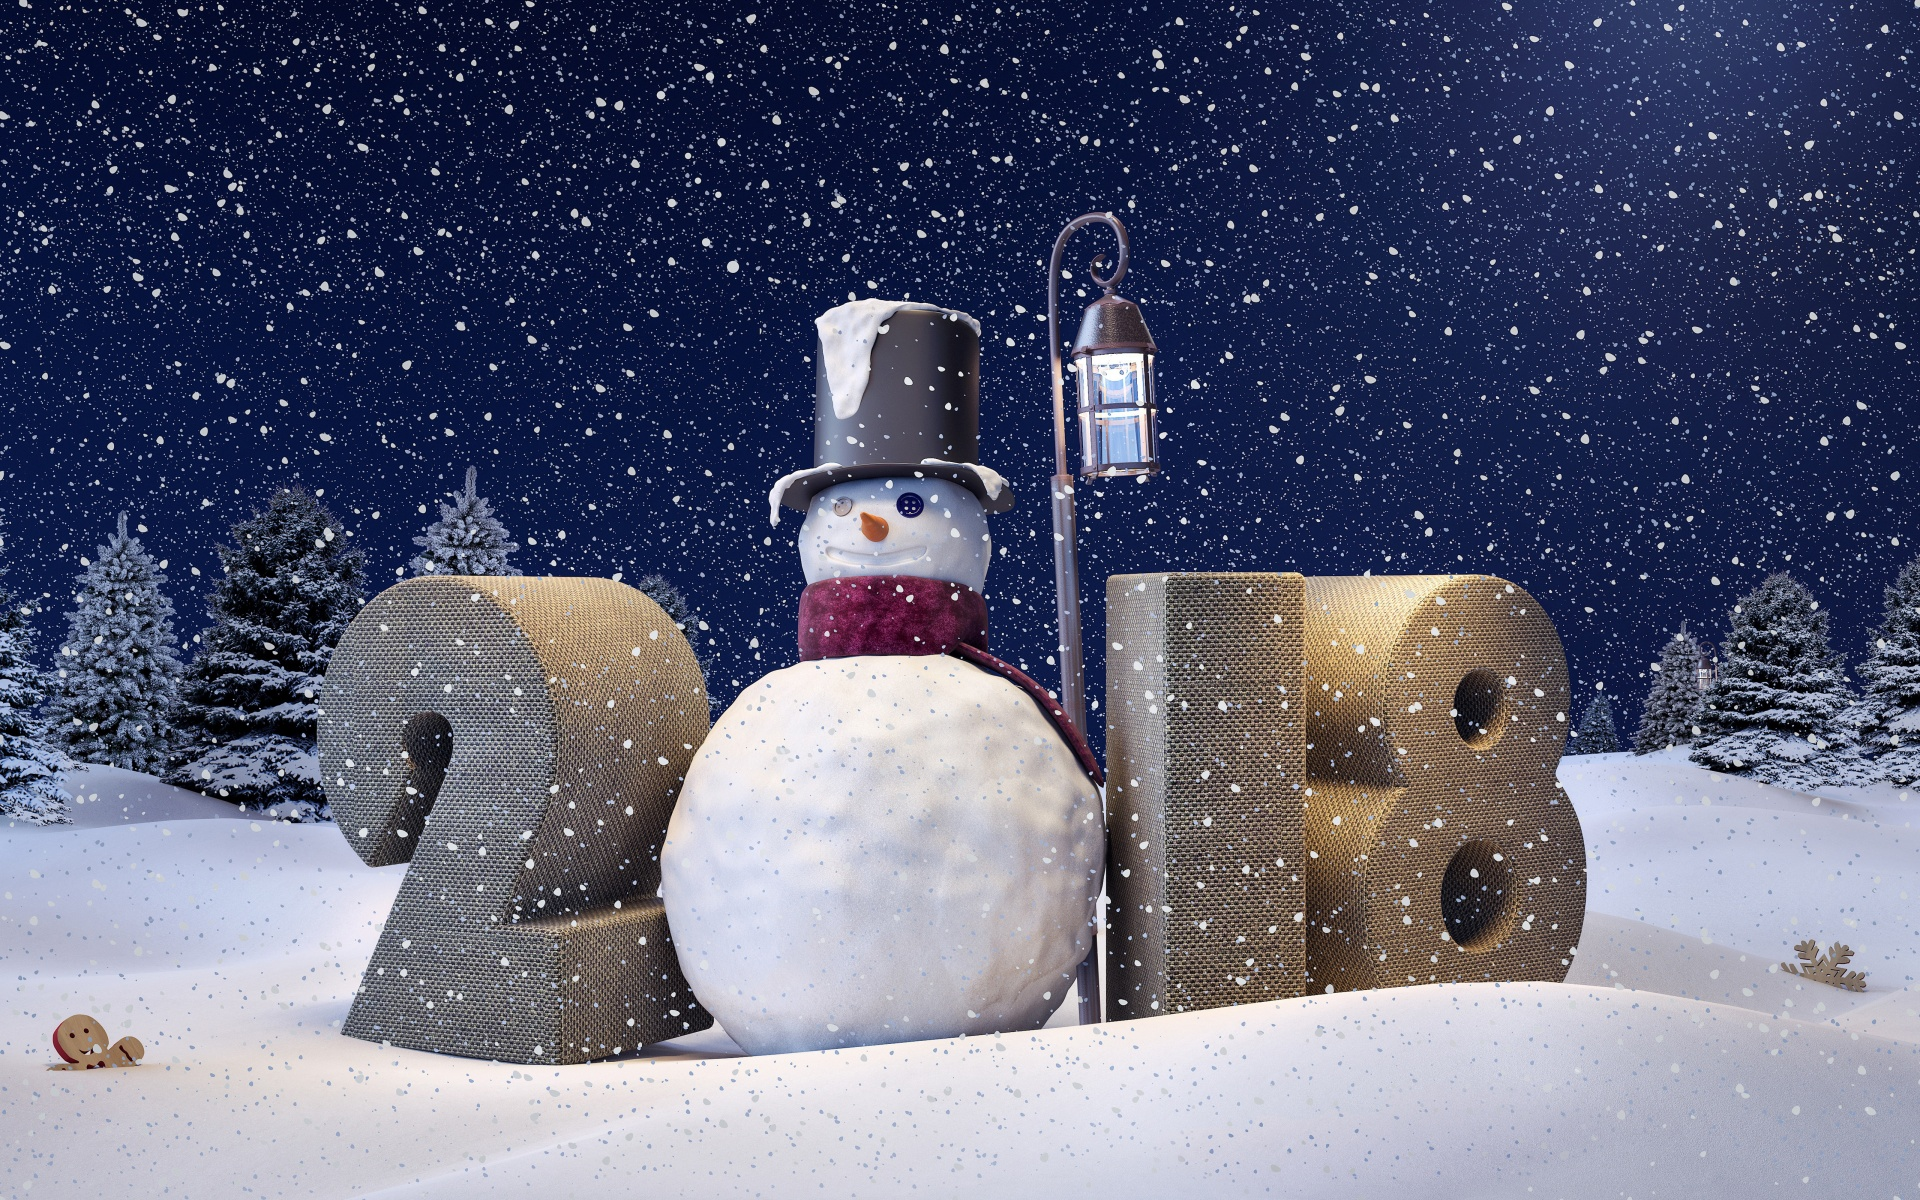 Happy New Year 2018 Snowman